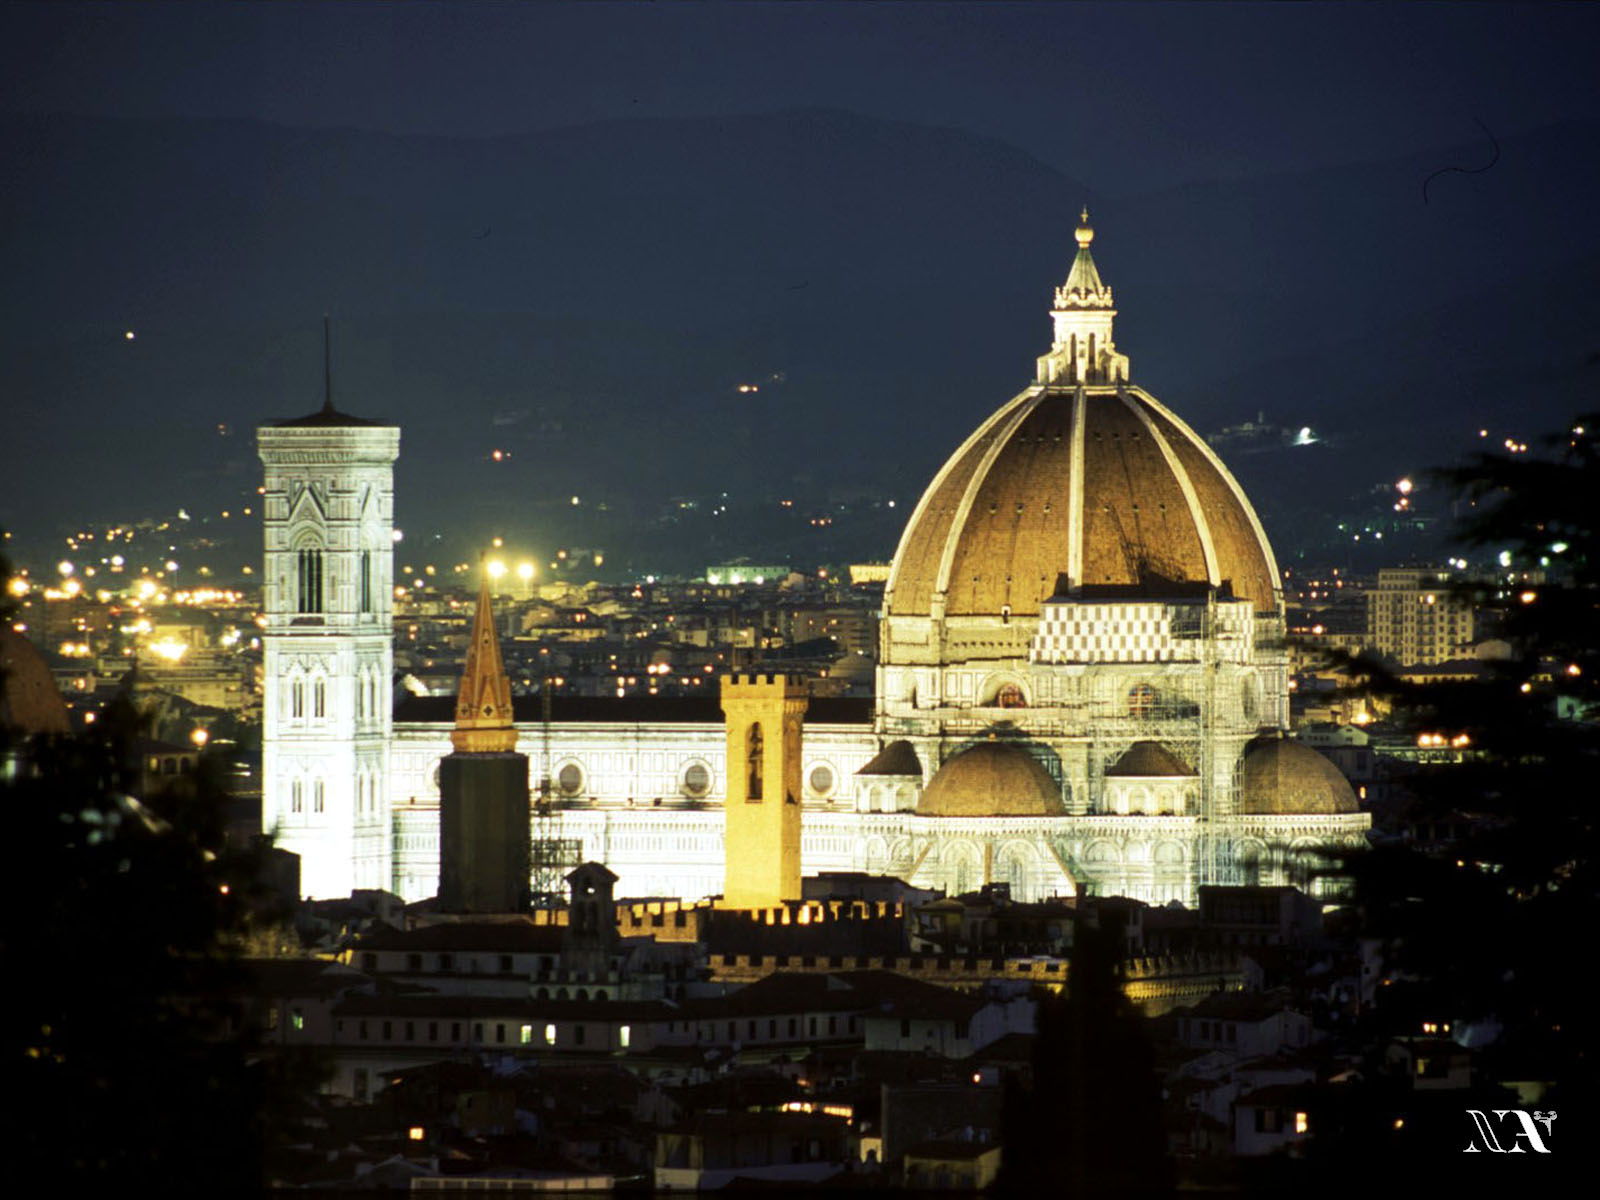 el s iacute ndrome de florencia o de stendhal the florence syndrome or el siacutendrome de florencia o de stendhal the florence syndrome or of stendhal